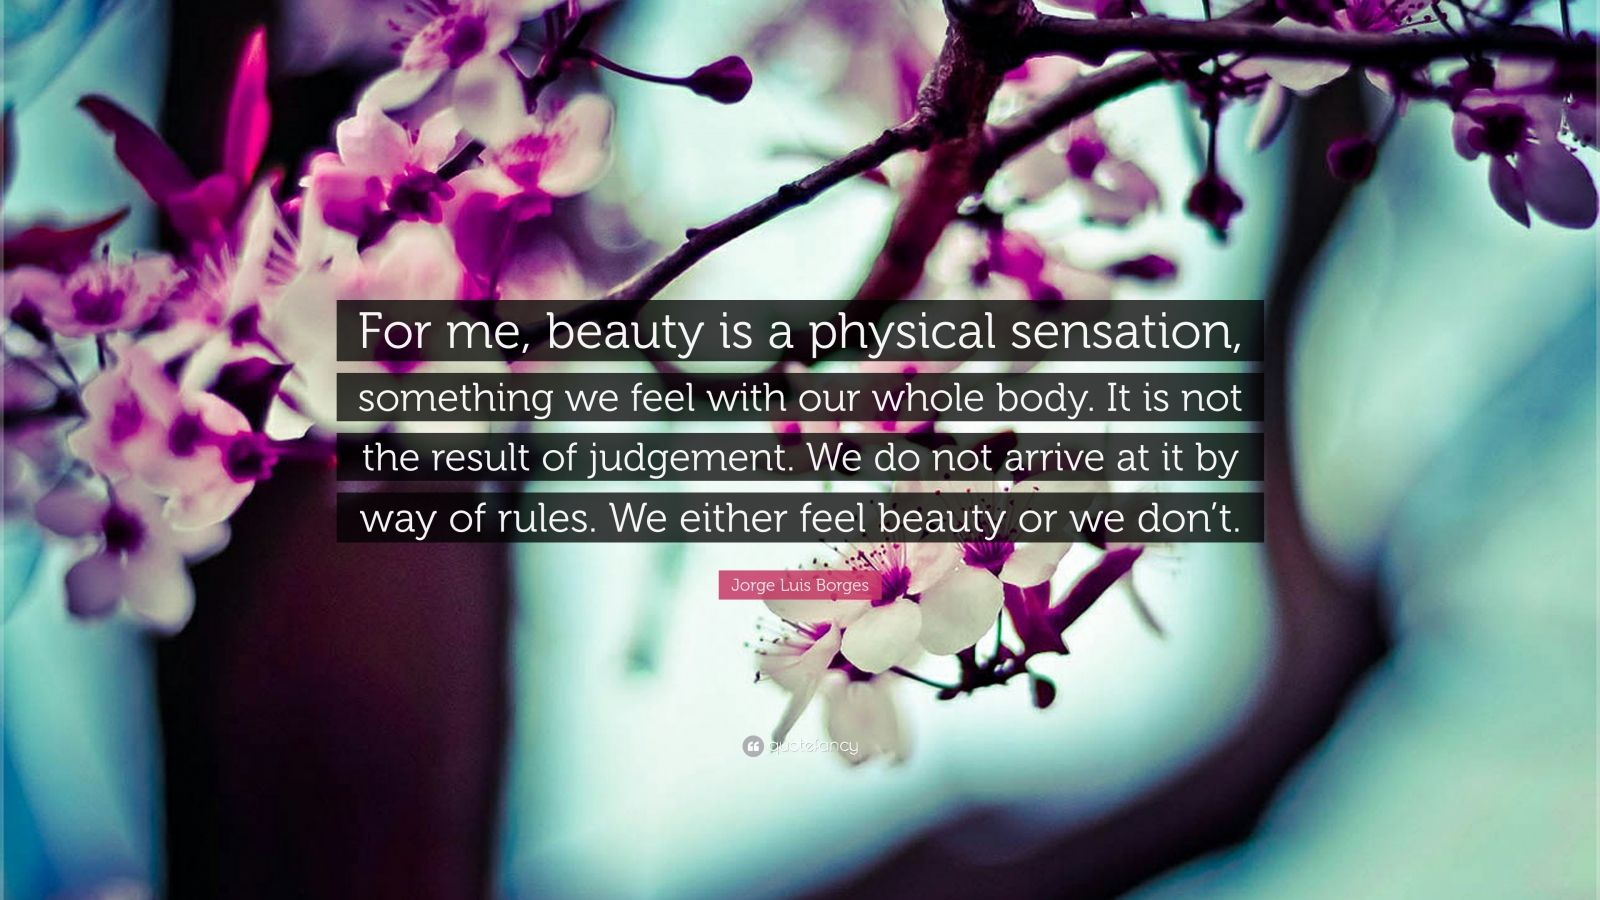 """Jorge Luis Borges Quote: """"For me, beauty is a physical sensation, something we feel with our whole body. It is not the result of judgement. We do not arrive at it by way of rules. We either feel beauty or we don't."""""""